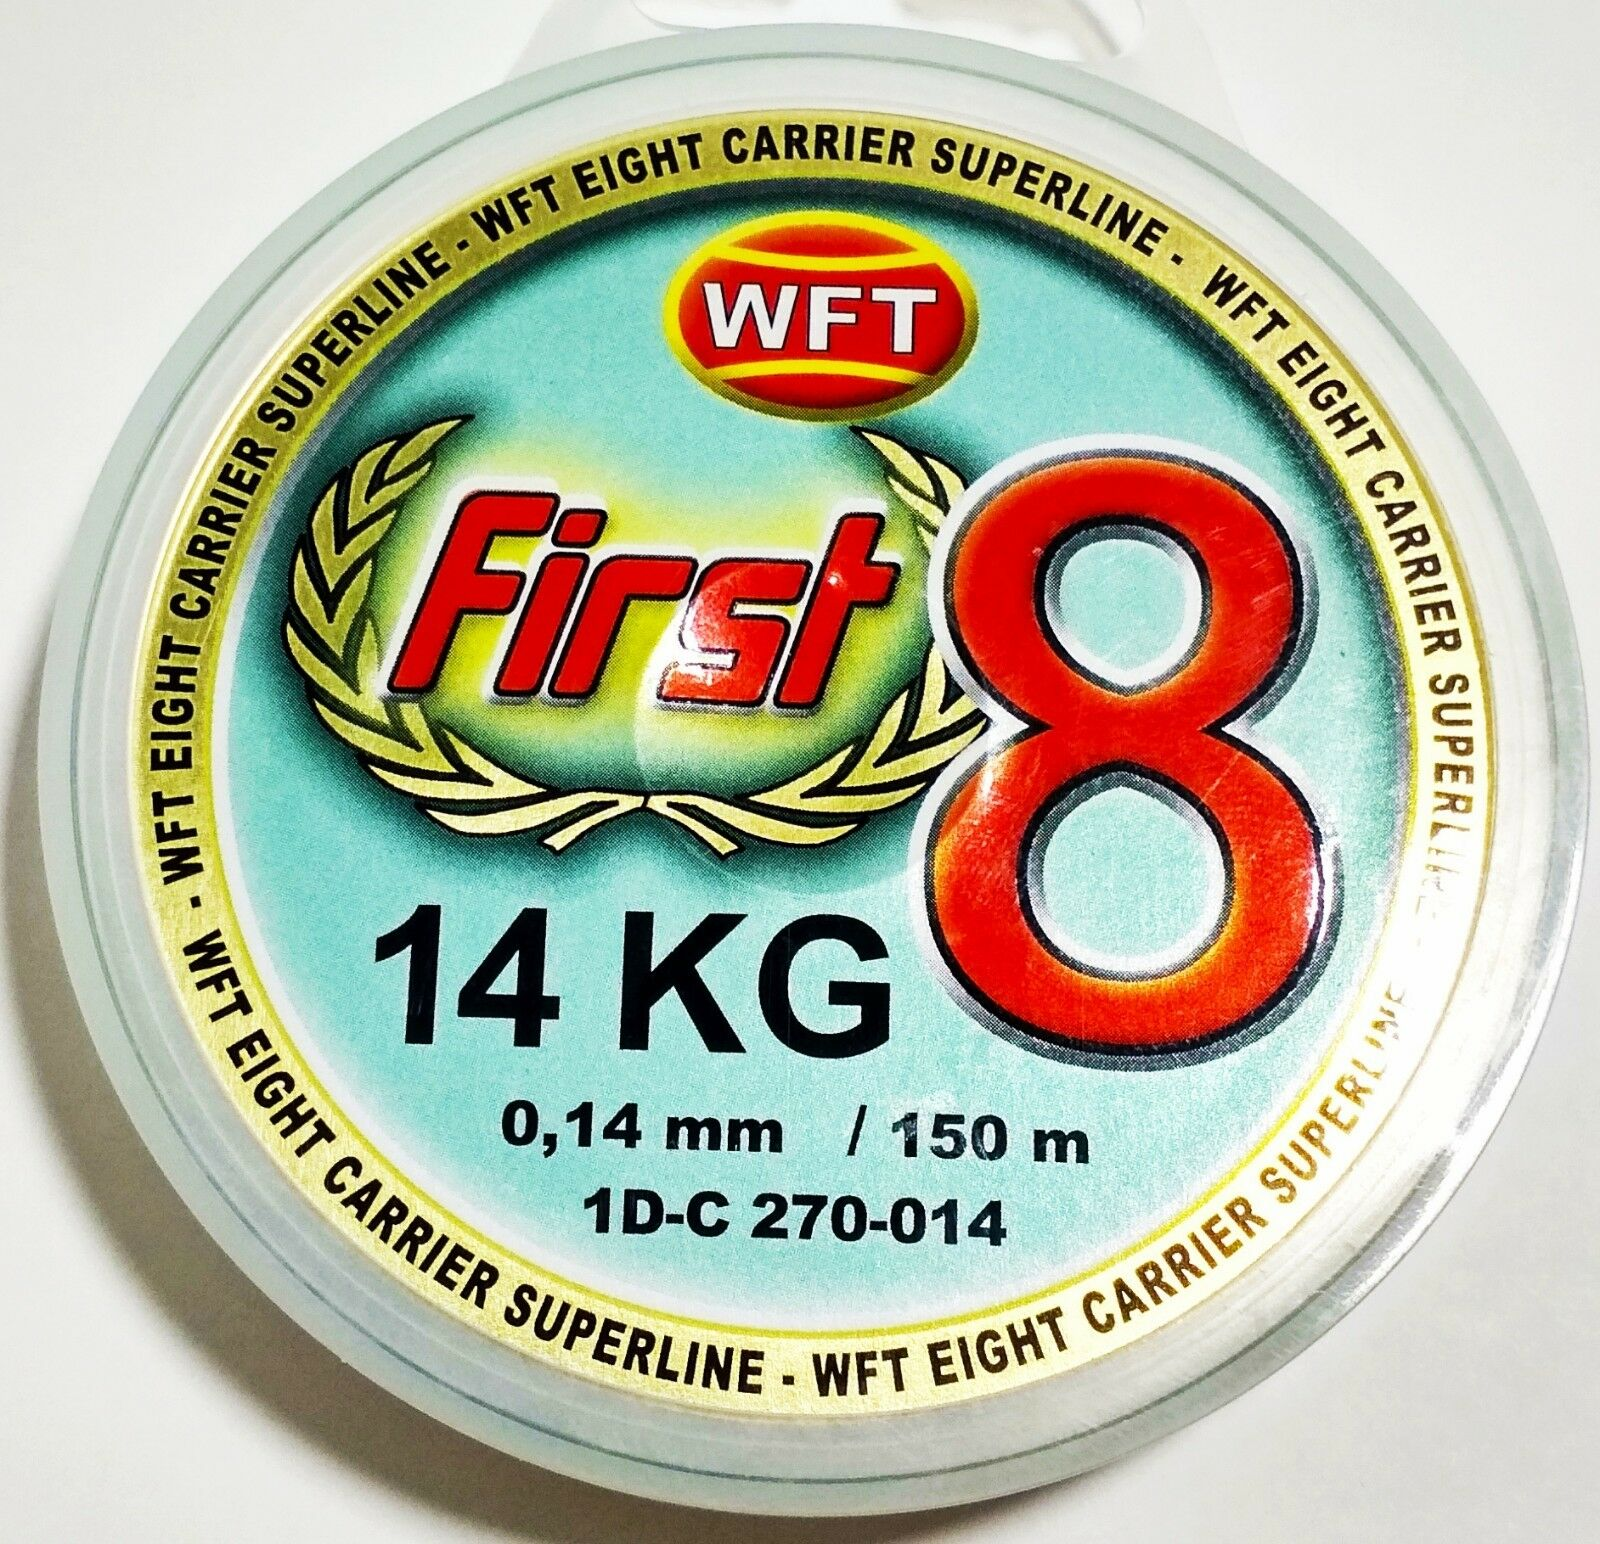 WFT First 8 14kg  0.14mm 150m color Soft Green  online retailers